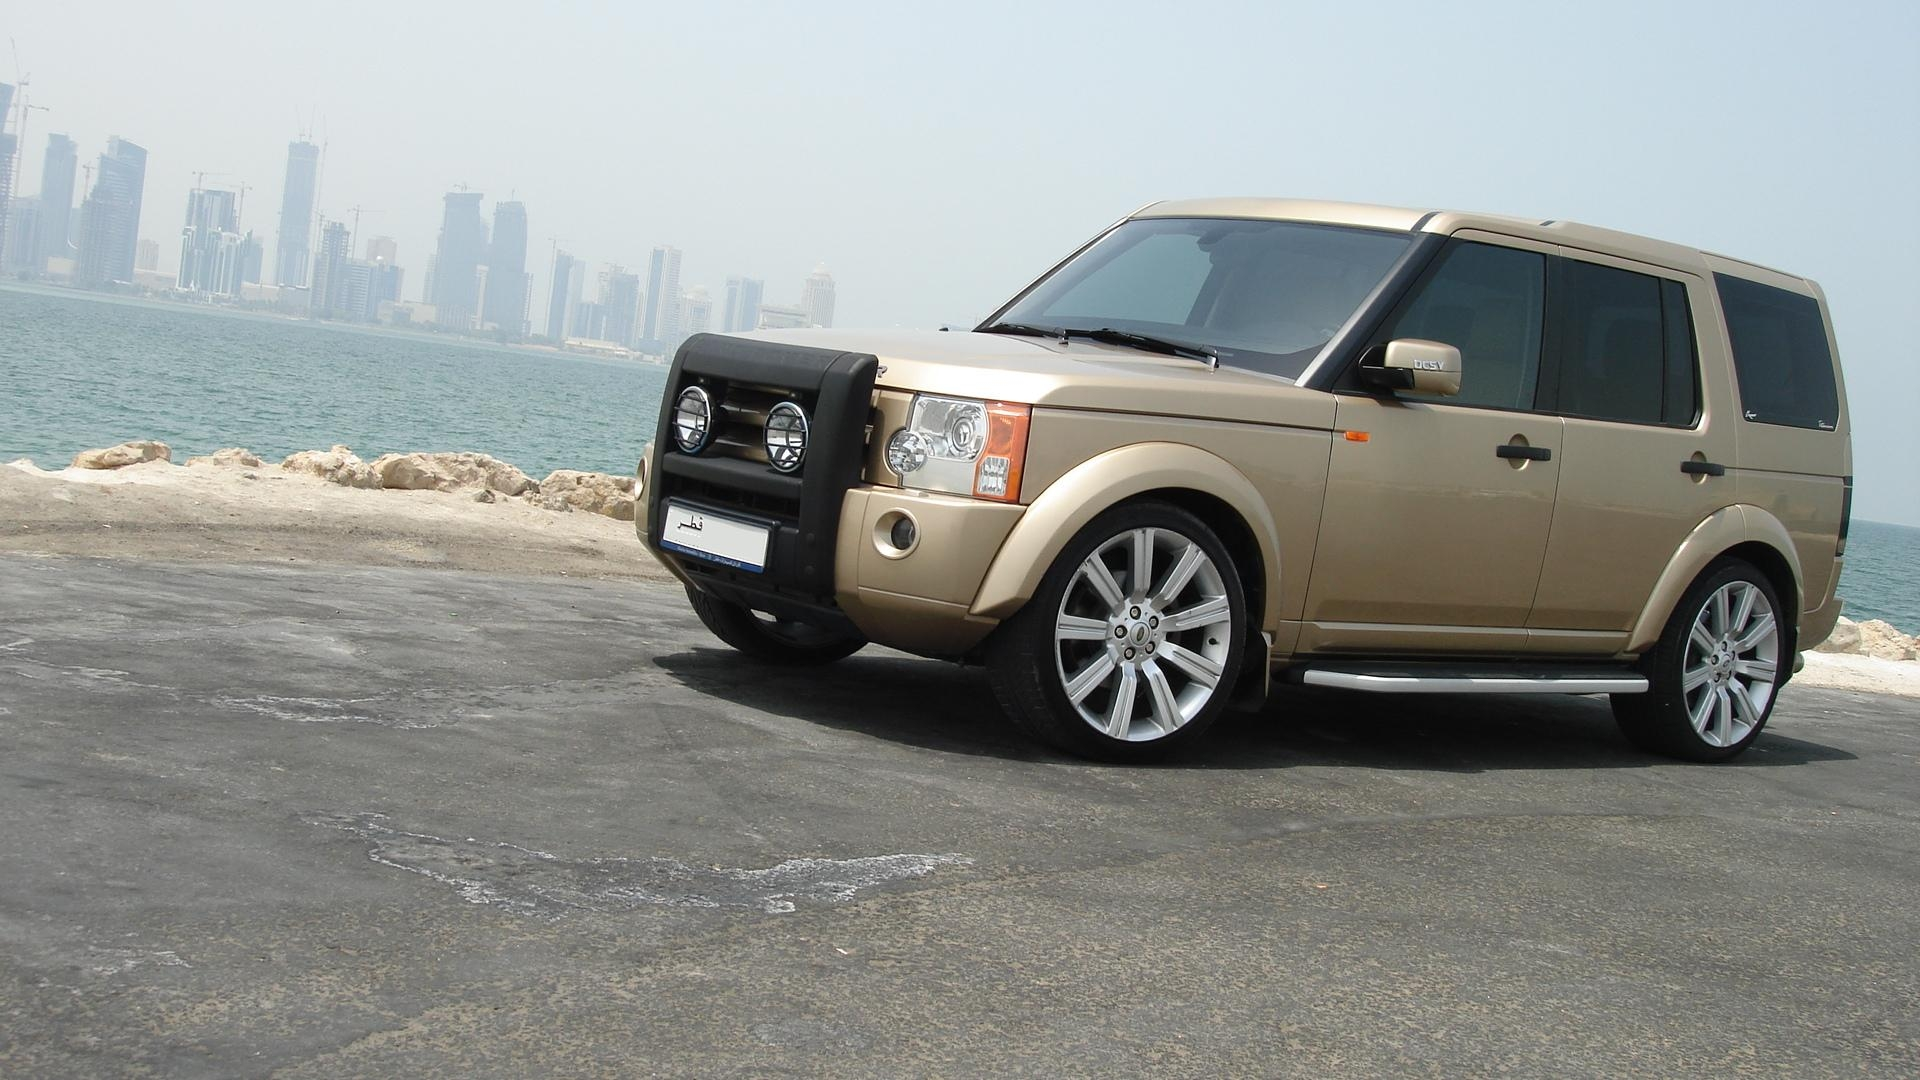 2006 Land Rover LR3 Information and photos ZombieDrive